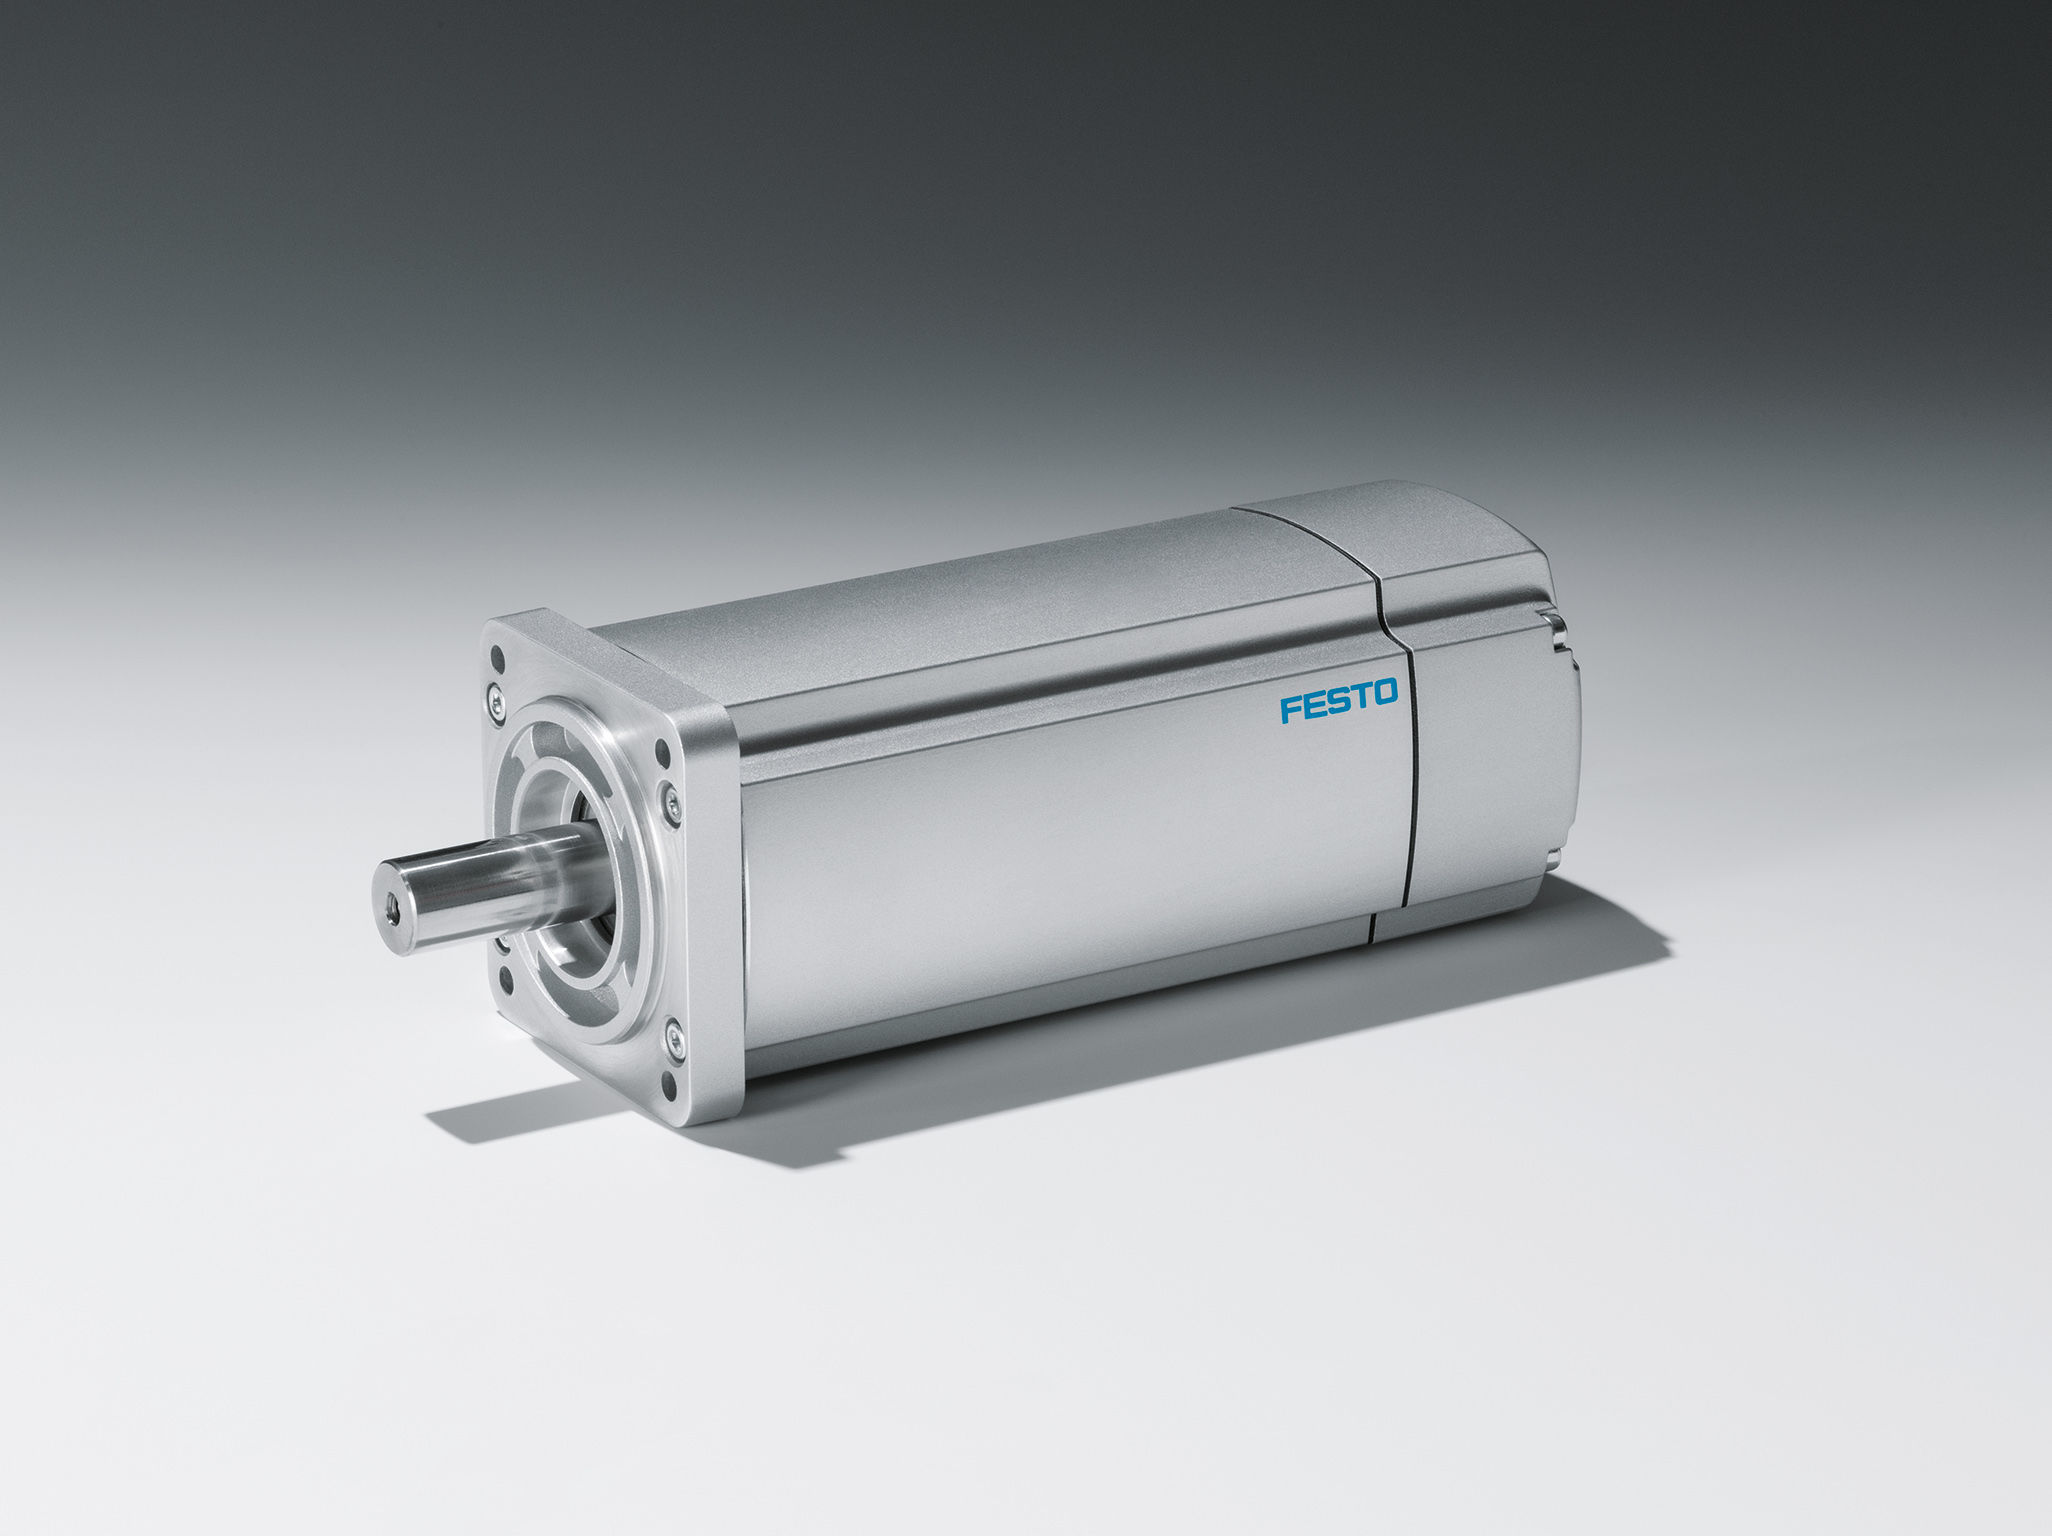 Festo Distributor in India